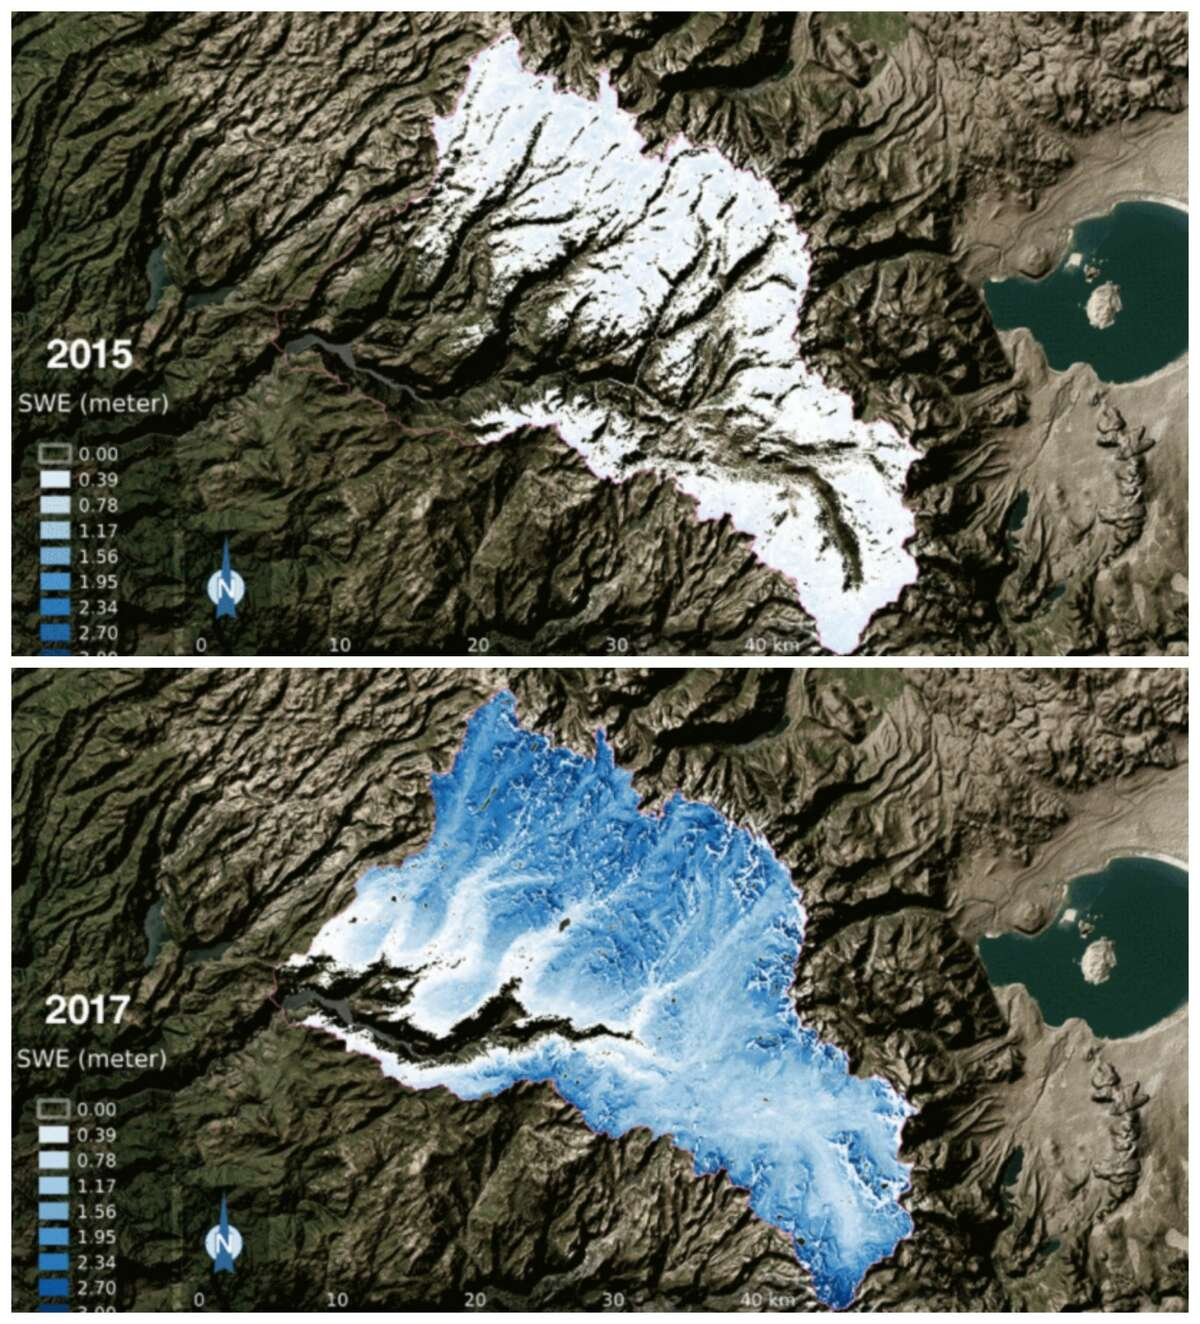 """This photo composite shows the snow water equivalent-- water content of snow -- in the Tuolumne River Basin in 2015 and 2017. White and the lighter blue indicates less snow, while deeper blue represents more snow. NASA reports: """"The 2017 snow water equivalent was 21 times greater than 2015, which was the lowest snowpack on record."""""""